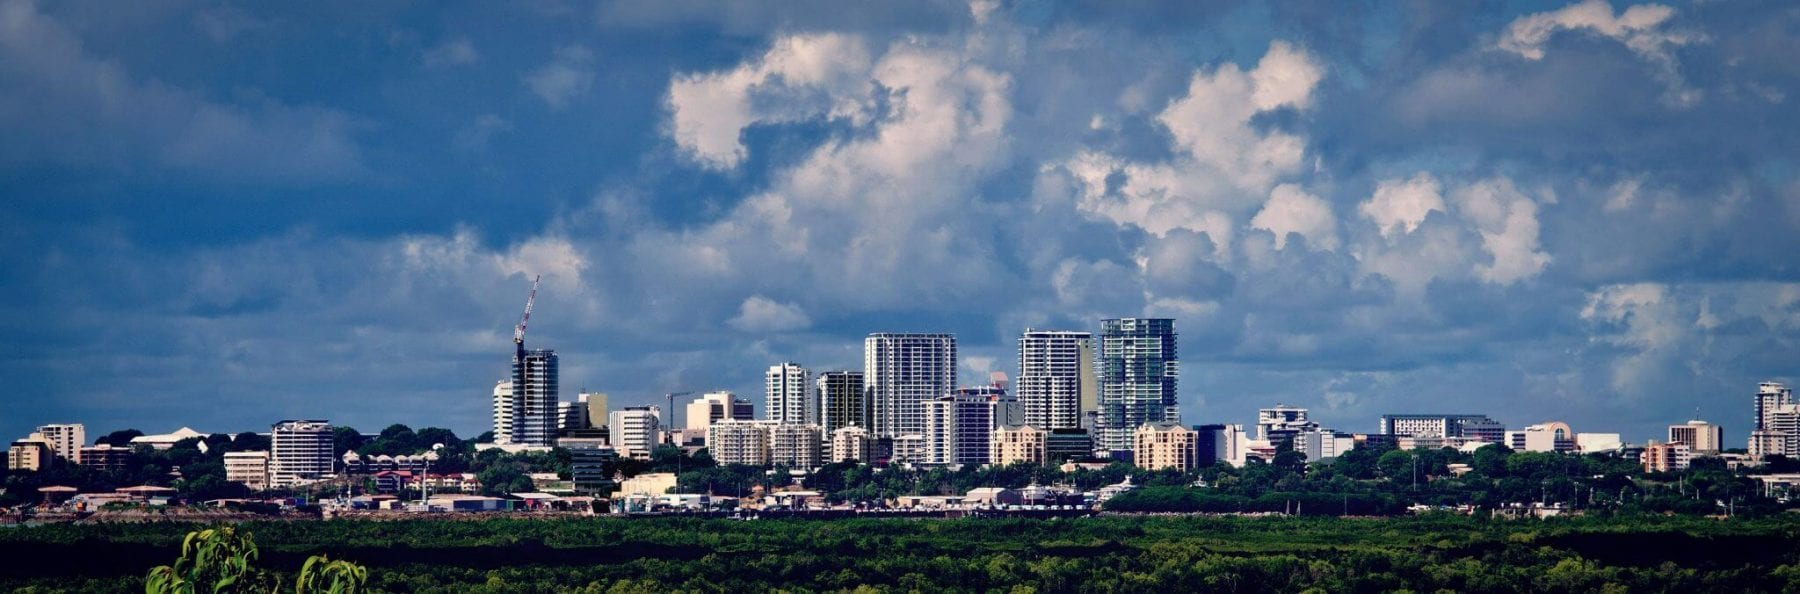 City_landscape_of_Darwin_Northern_Territory